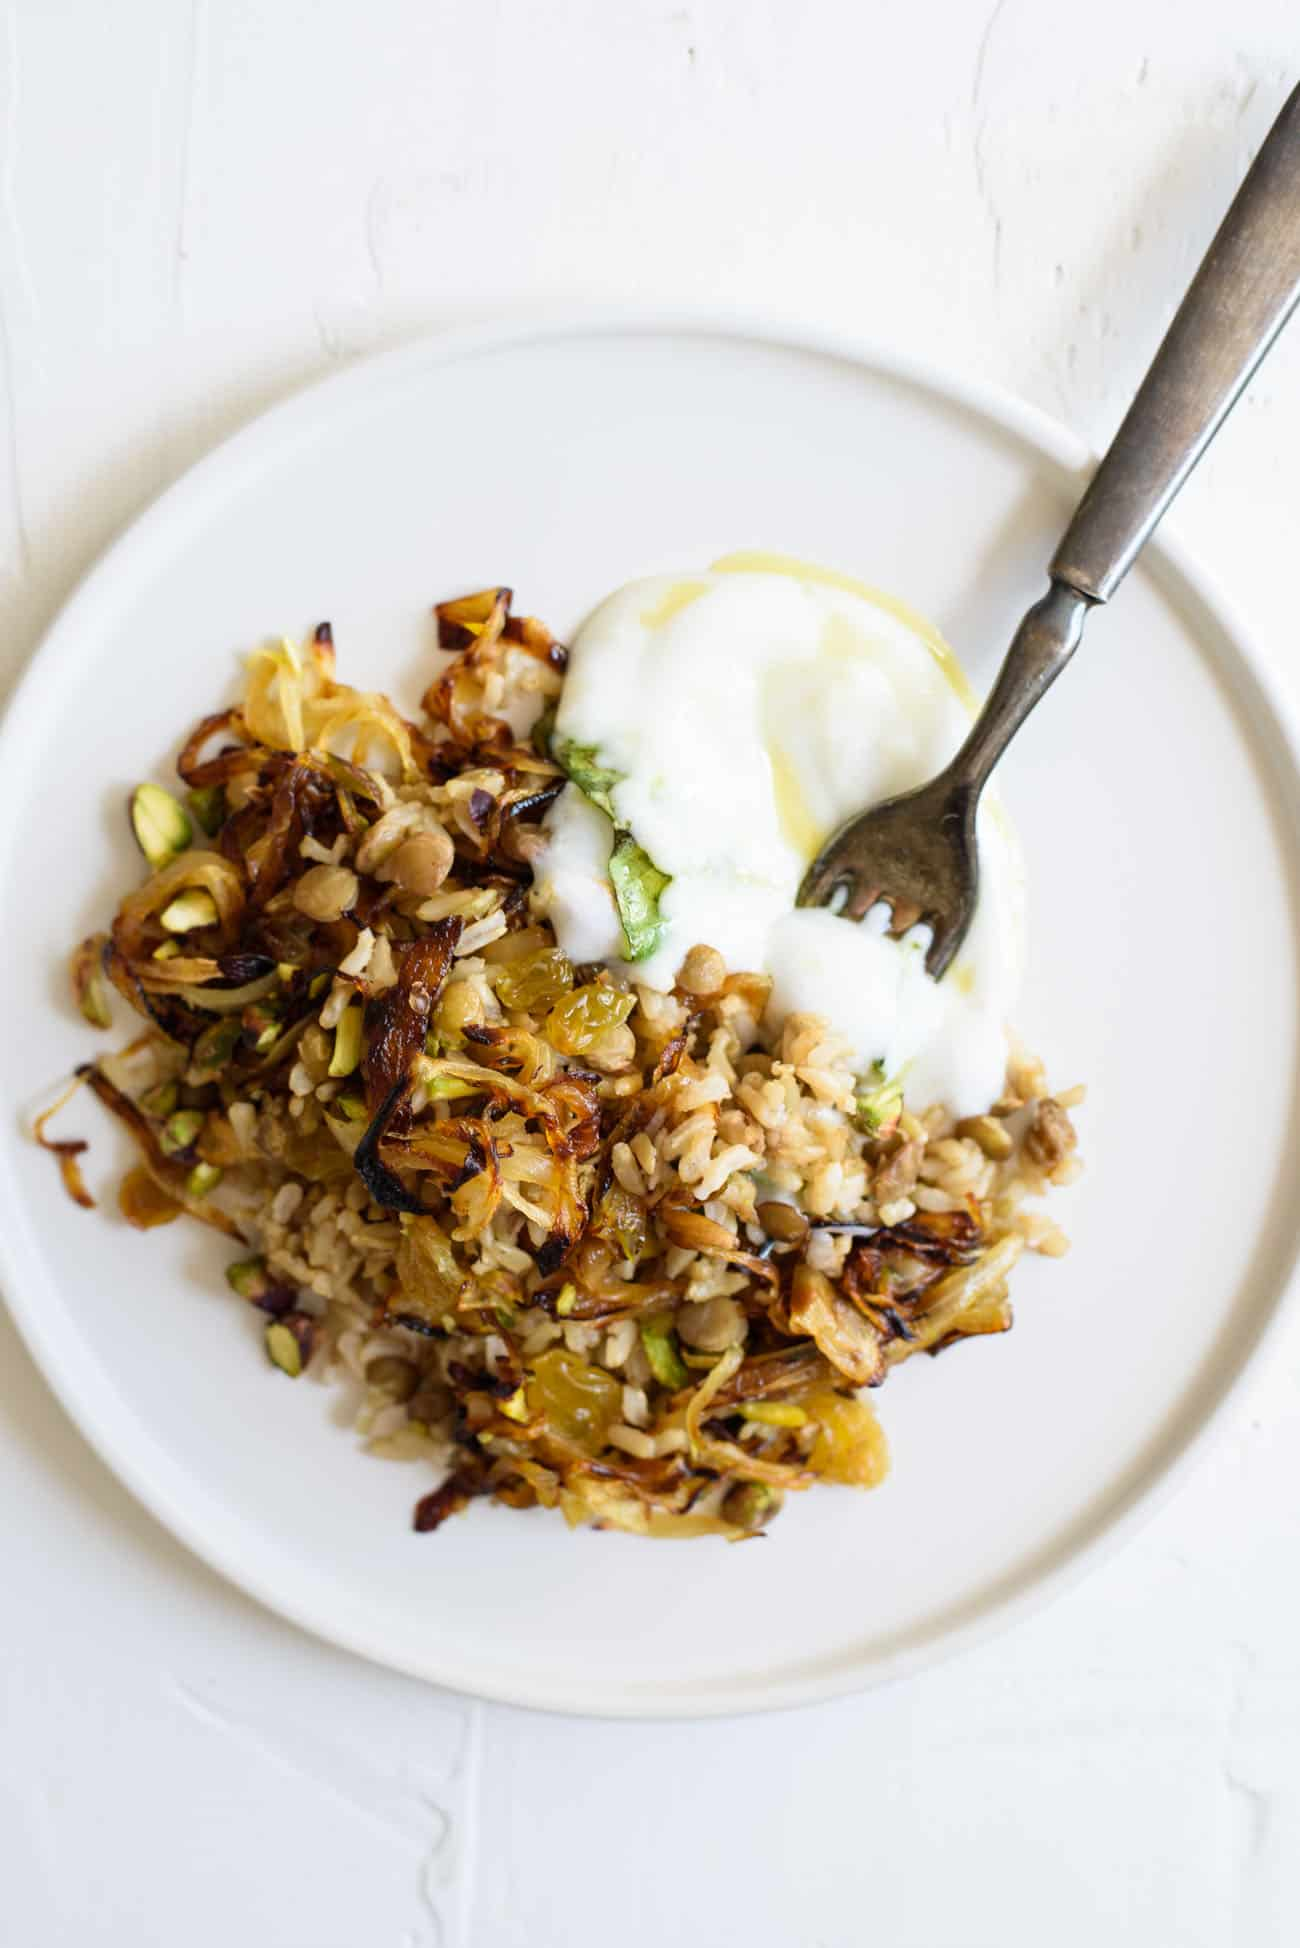 Mujadara recipe: close-up of mujadara (brown rice and lentils with fried onions) on a white plate with yogurt